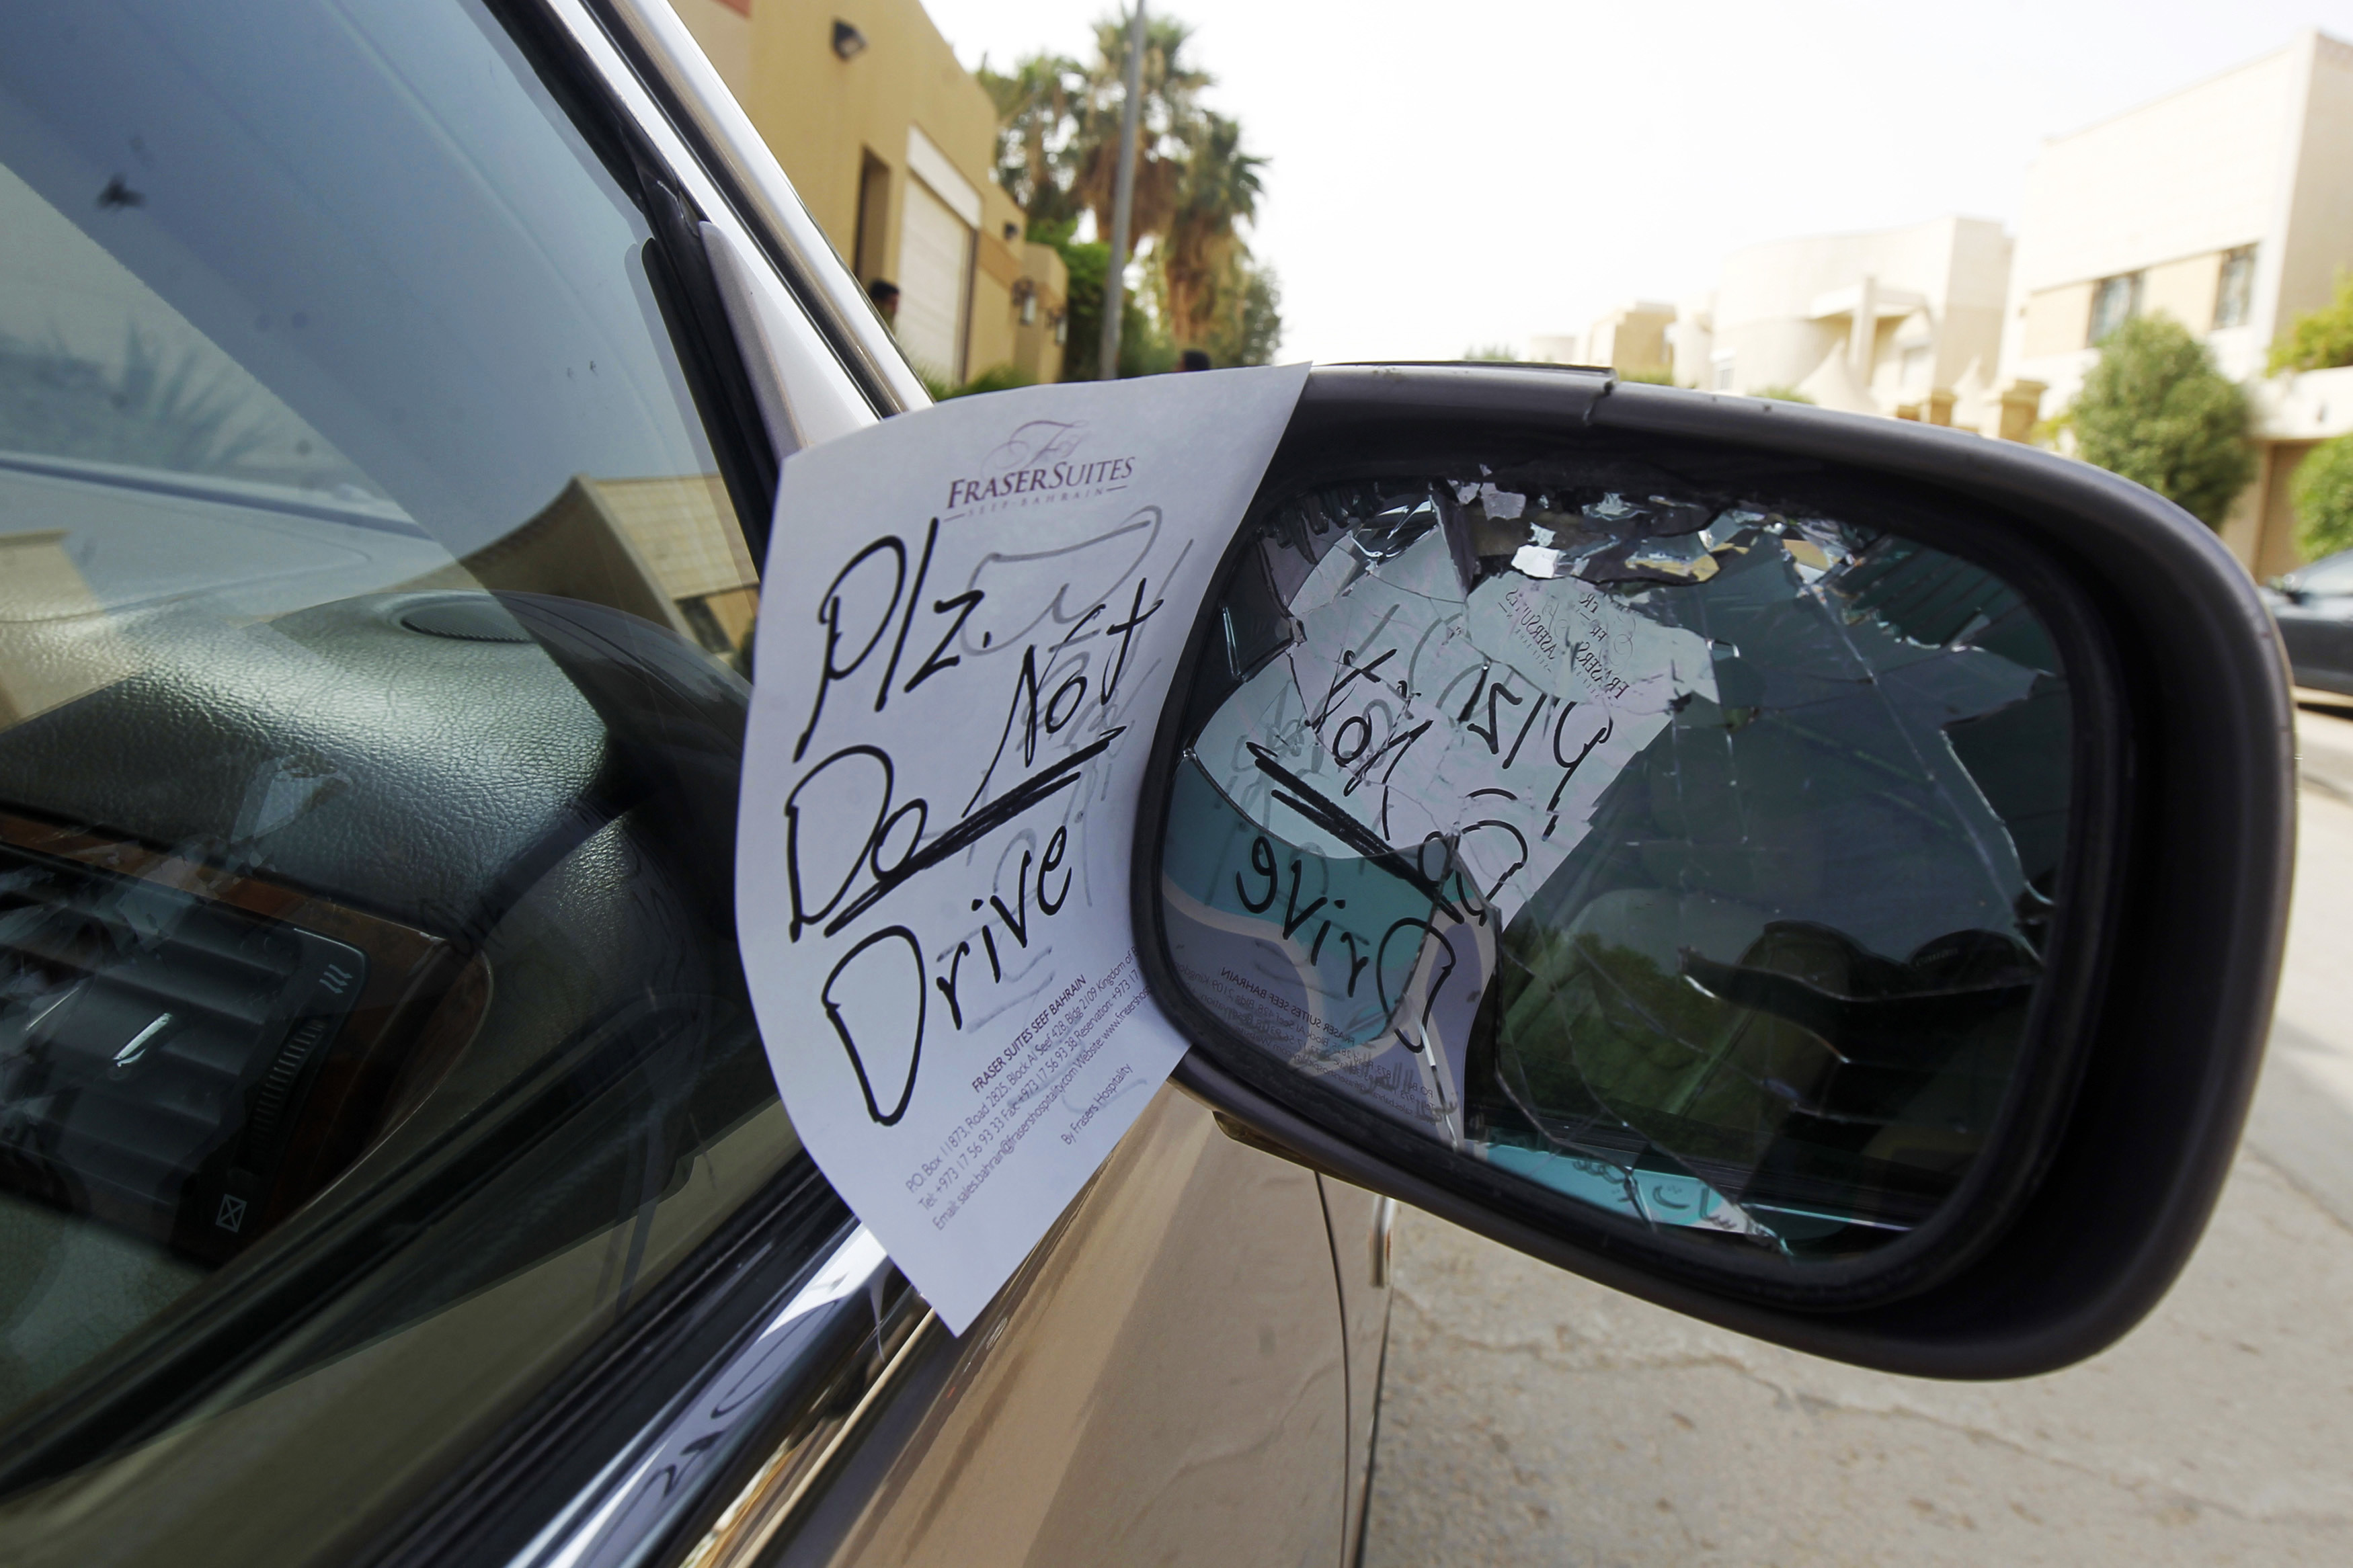 A note placed by an unknown person on female driver Azza Al Shmasani's car, is pictured in Saudi Arabia June 22, 2011. Saudi Arabia has no formal ban on women driving. But as citizens must use only Saudi-issued licences in the country, and as these are issued only to men, women drivers are anathema. An outcry at the segregation, which contributes to the general cloistering of Saudi women, has been fuelled by social media interest in two would-be female motorists arrested in May.  REUTERS/Fahad Shadeed   (SAUDI ARABIA - Tags: TRANSPORT SOCIETY) - RTR2NYLS